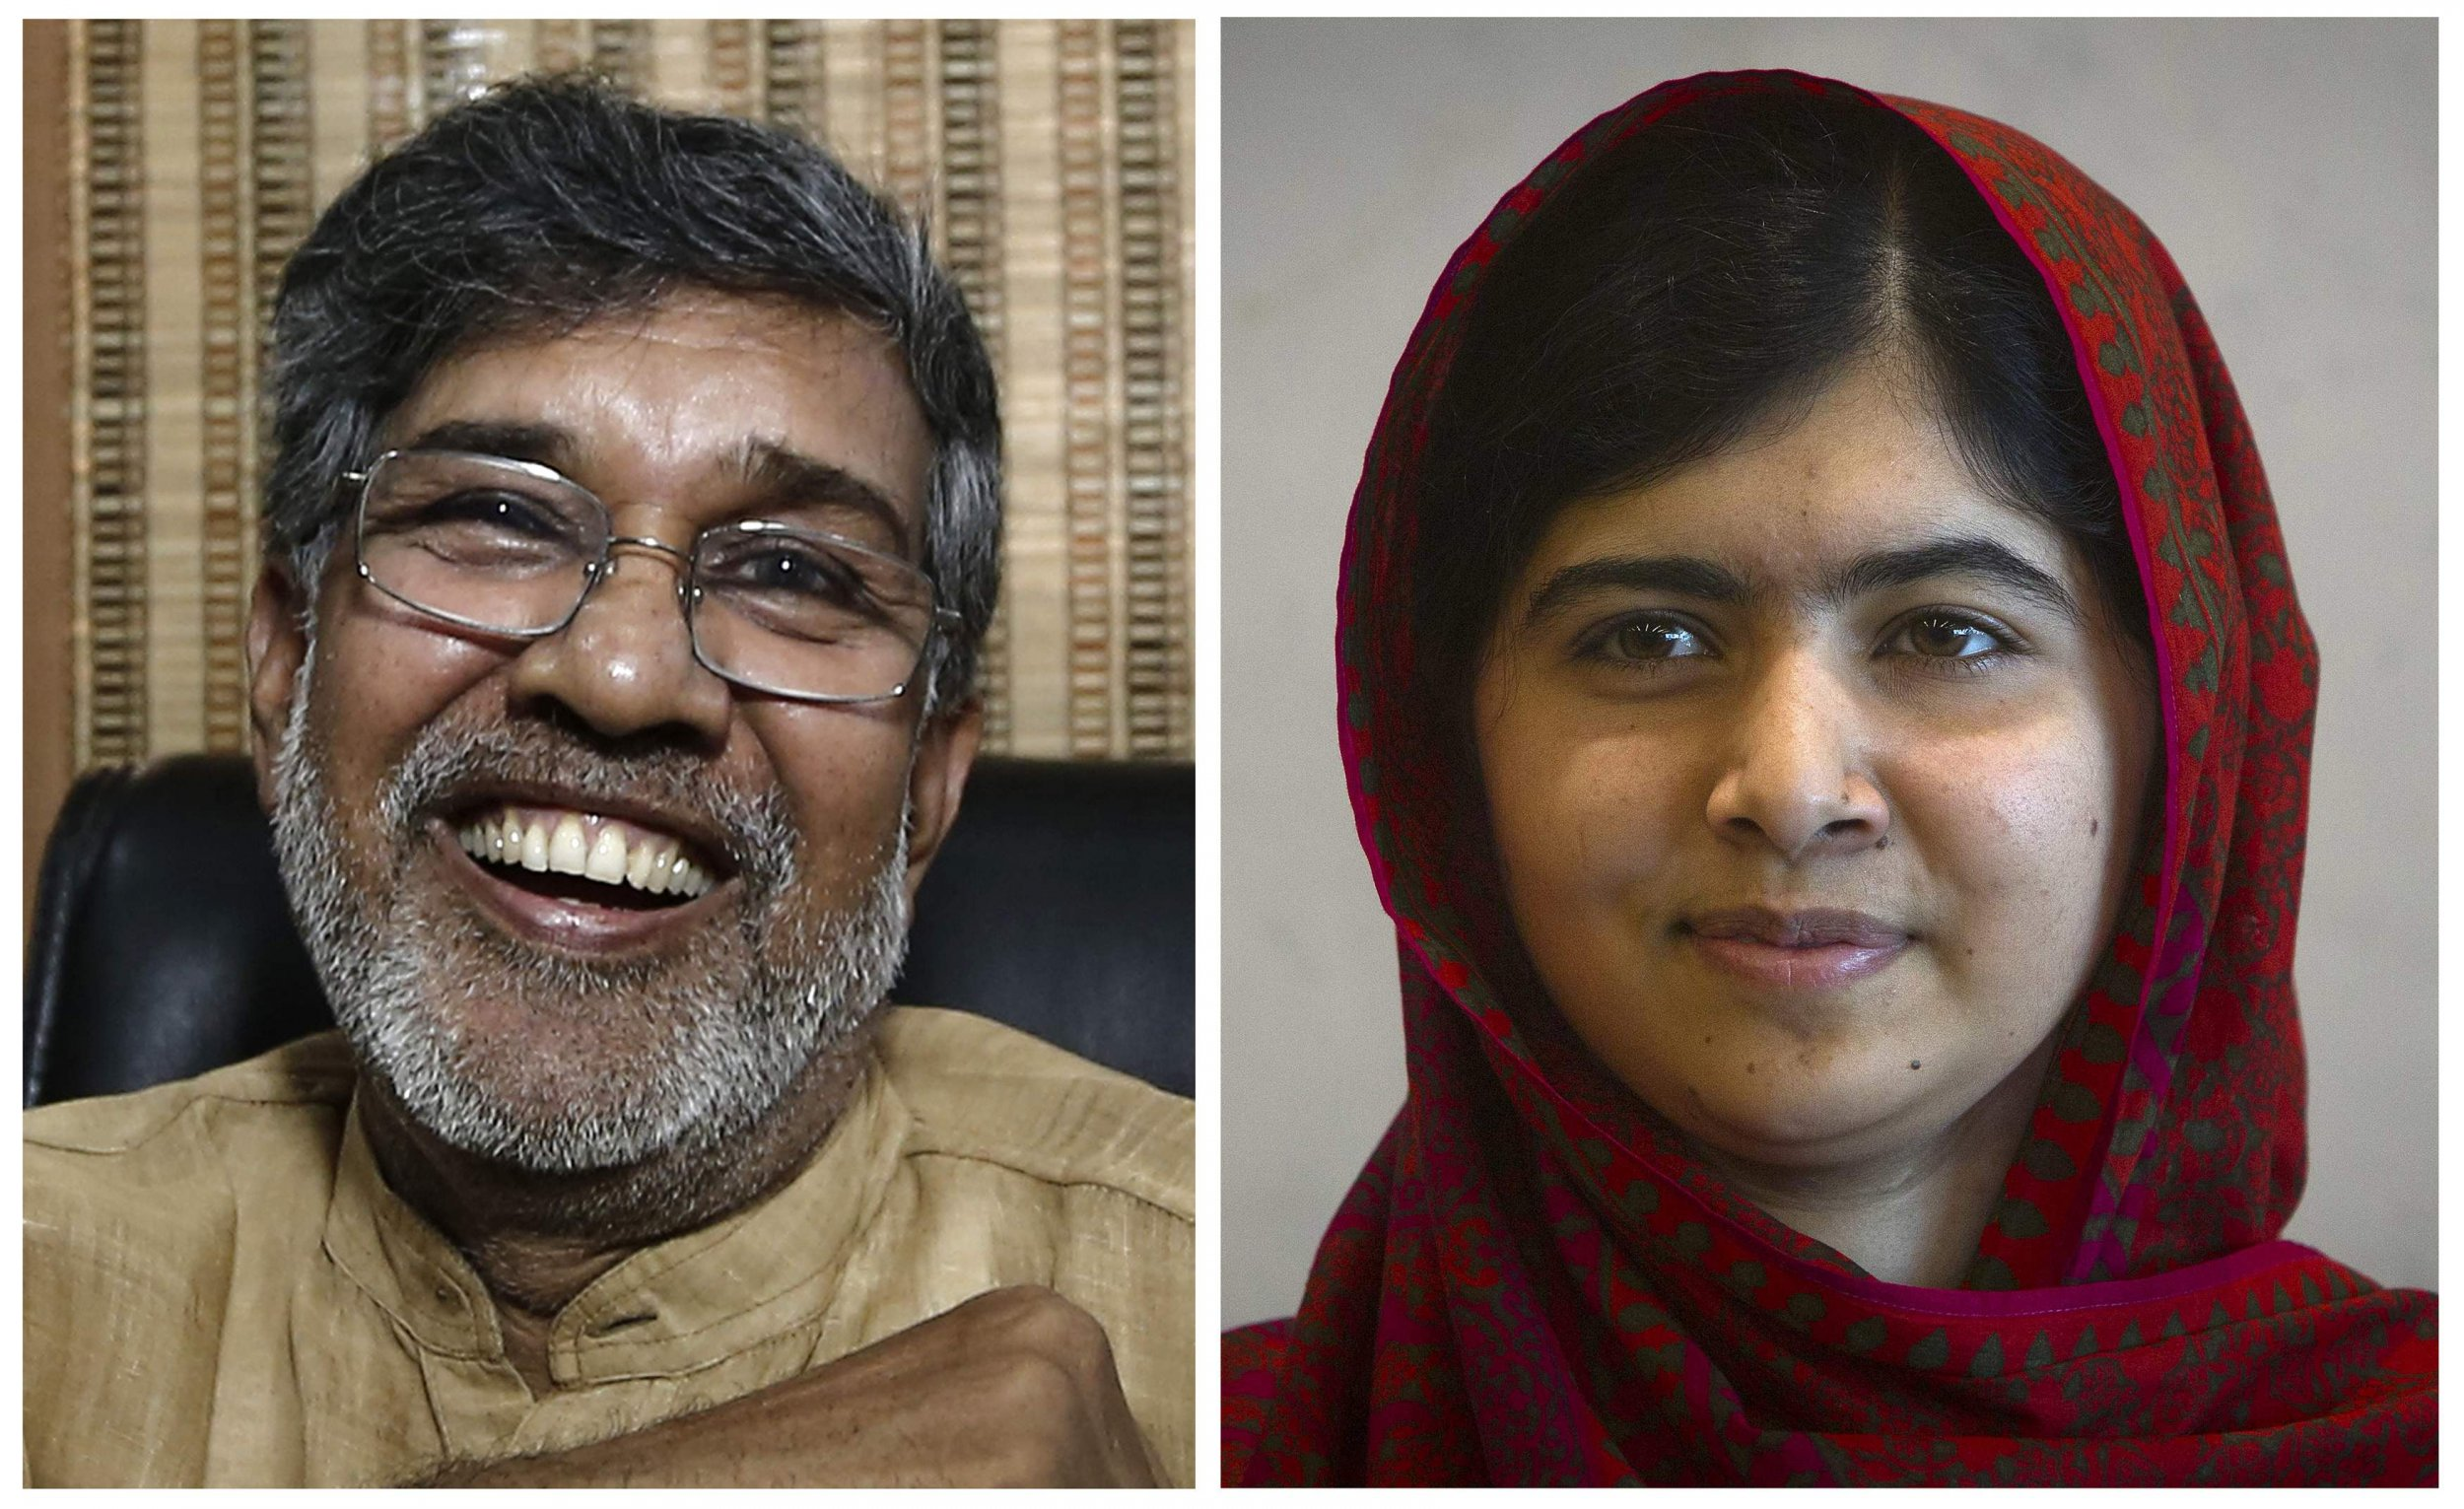 10-10-14 Nobel Peace Prize winners